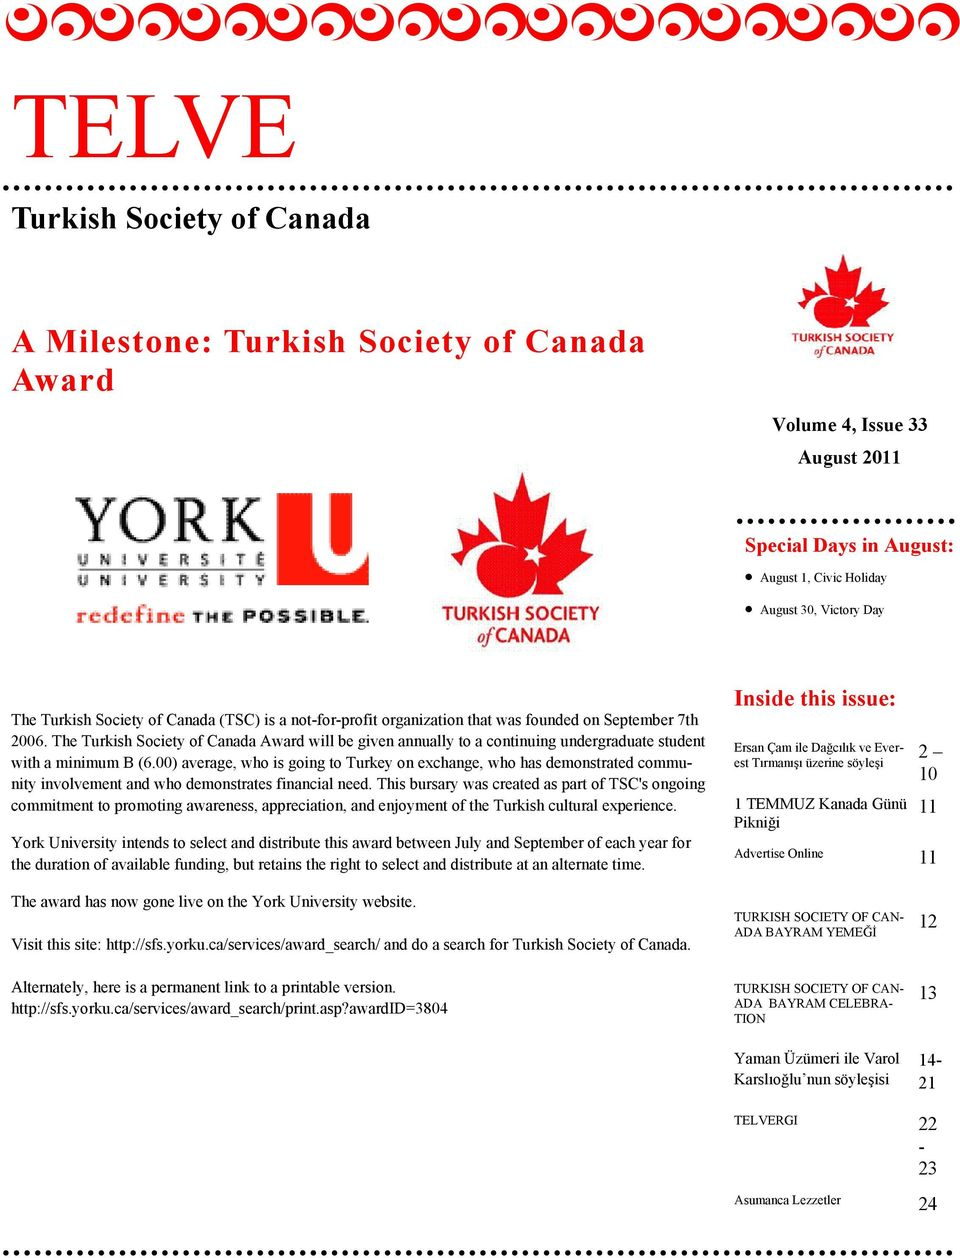 The Turkish Society of Canada Award will be given annually to a continuing undergraduate student with a minimum B (6.